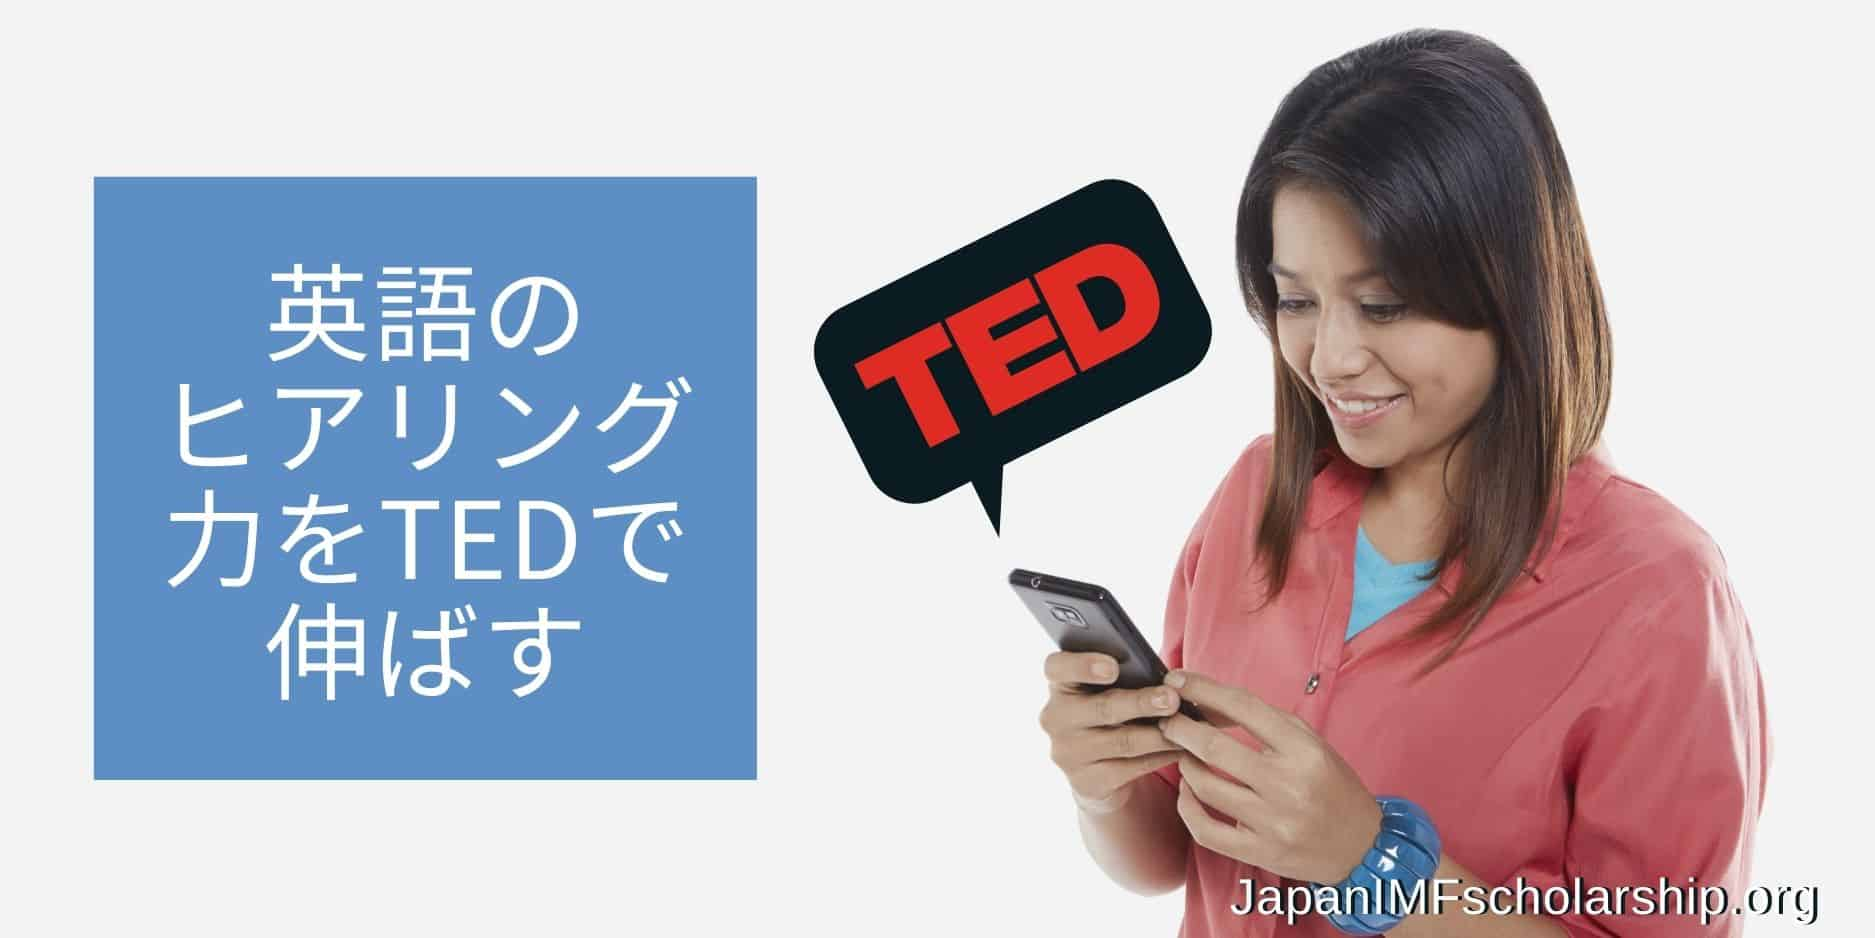 jisp web-fb ted for learning english online marketplaces